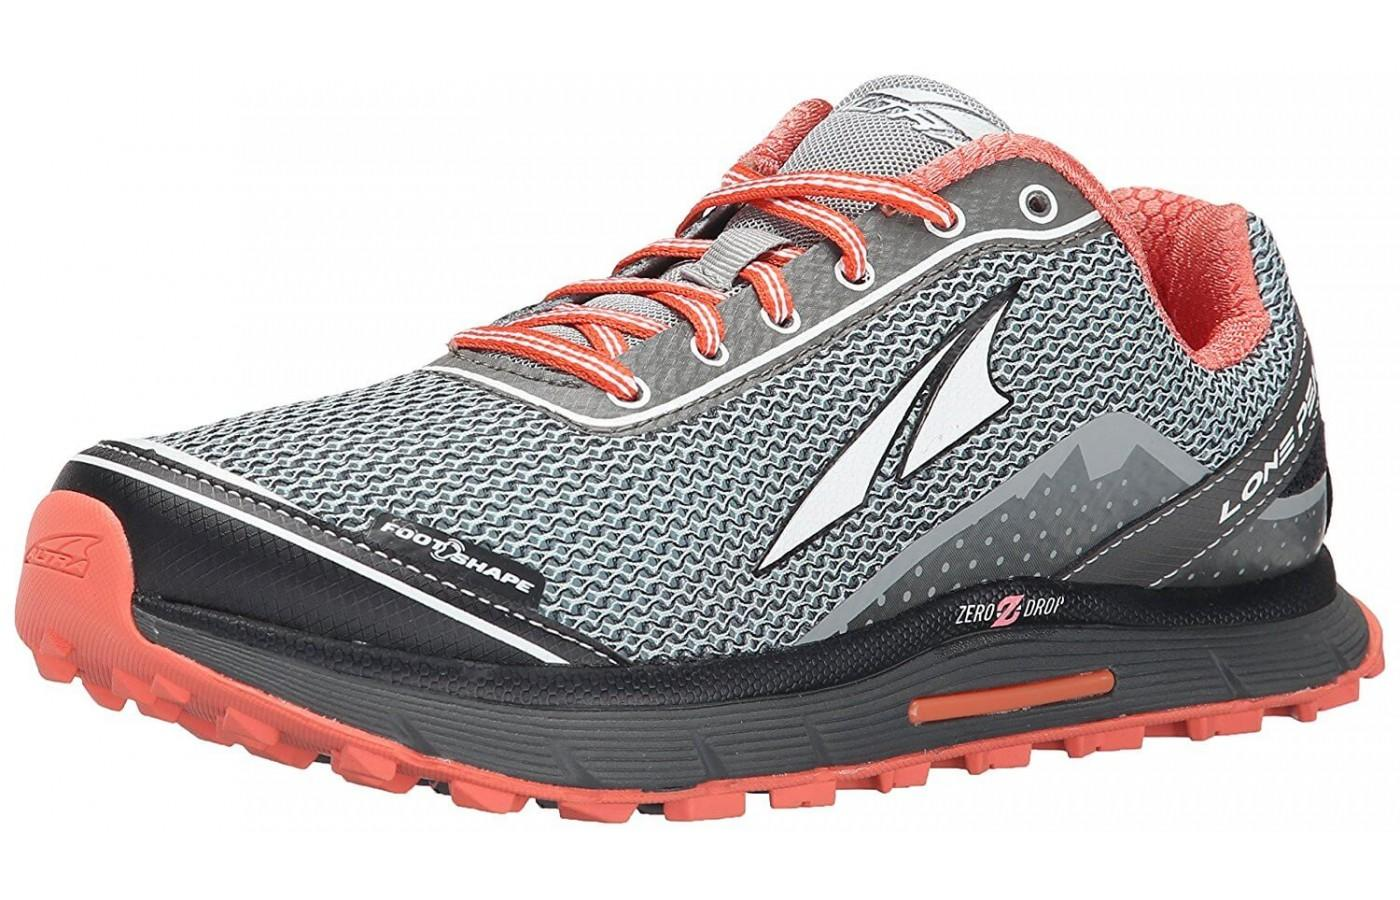 The Altra Lone Peak 2.5